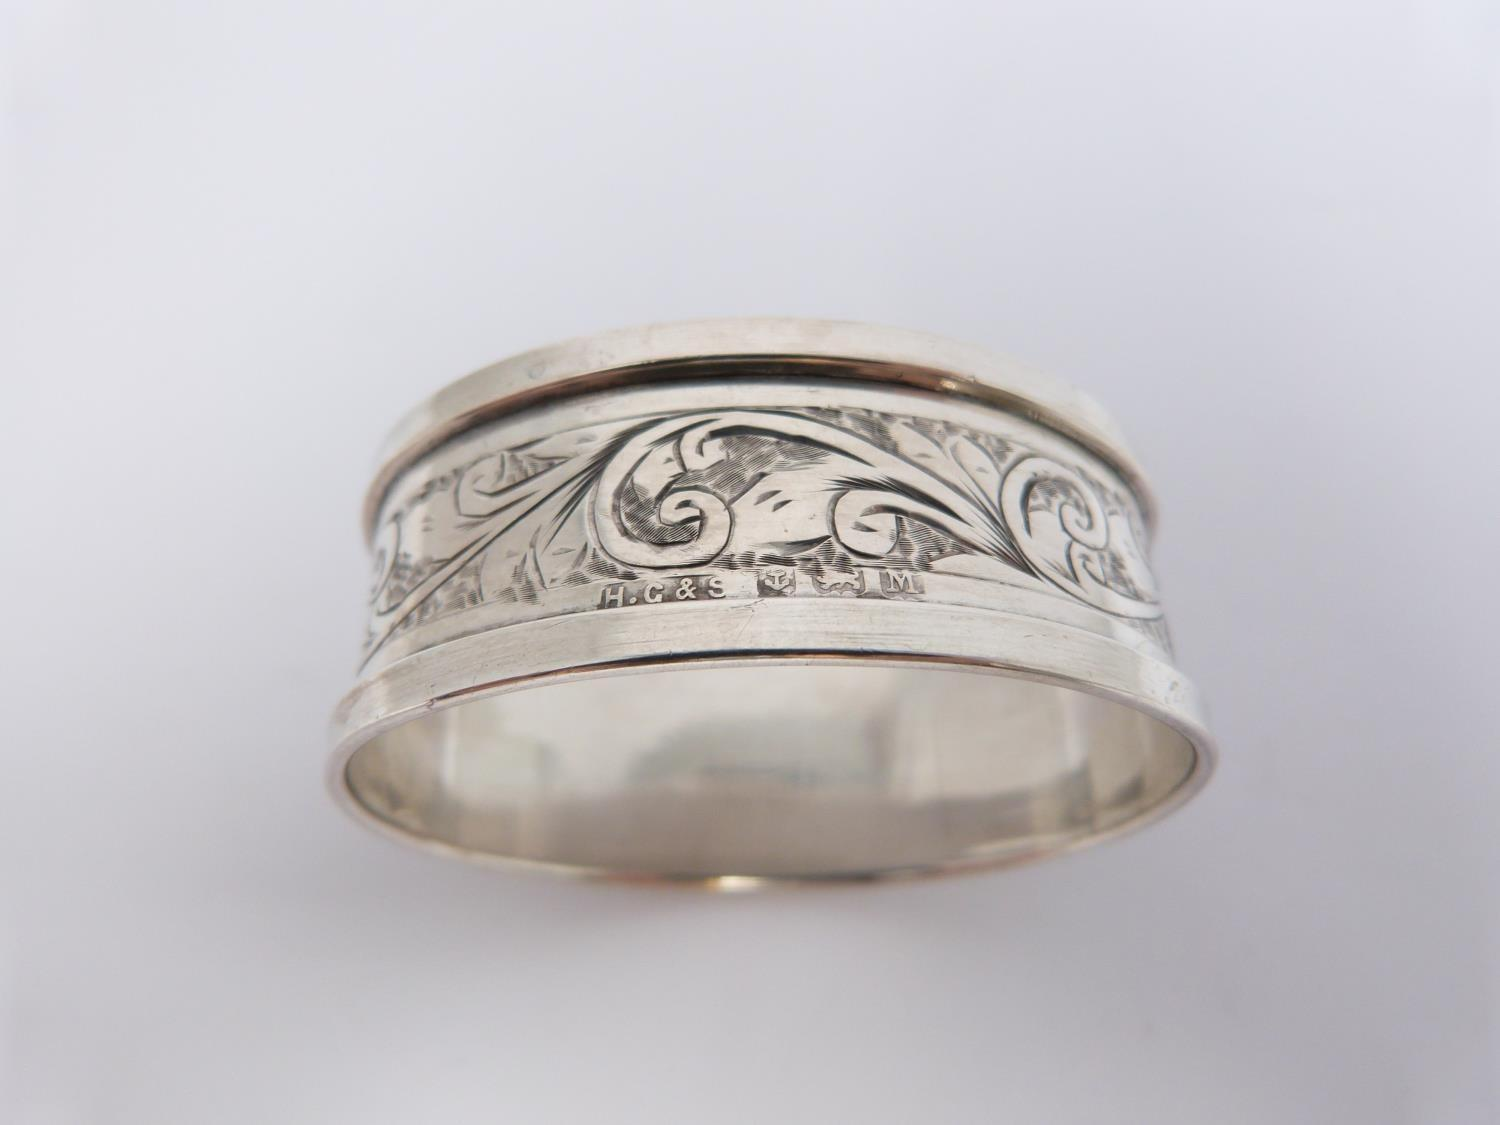 Two silver and cut glass sugar sifters, two silver pierced dishes and a silver engraved napkin ring, - Image 7 of 7